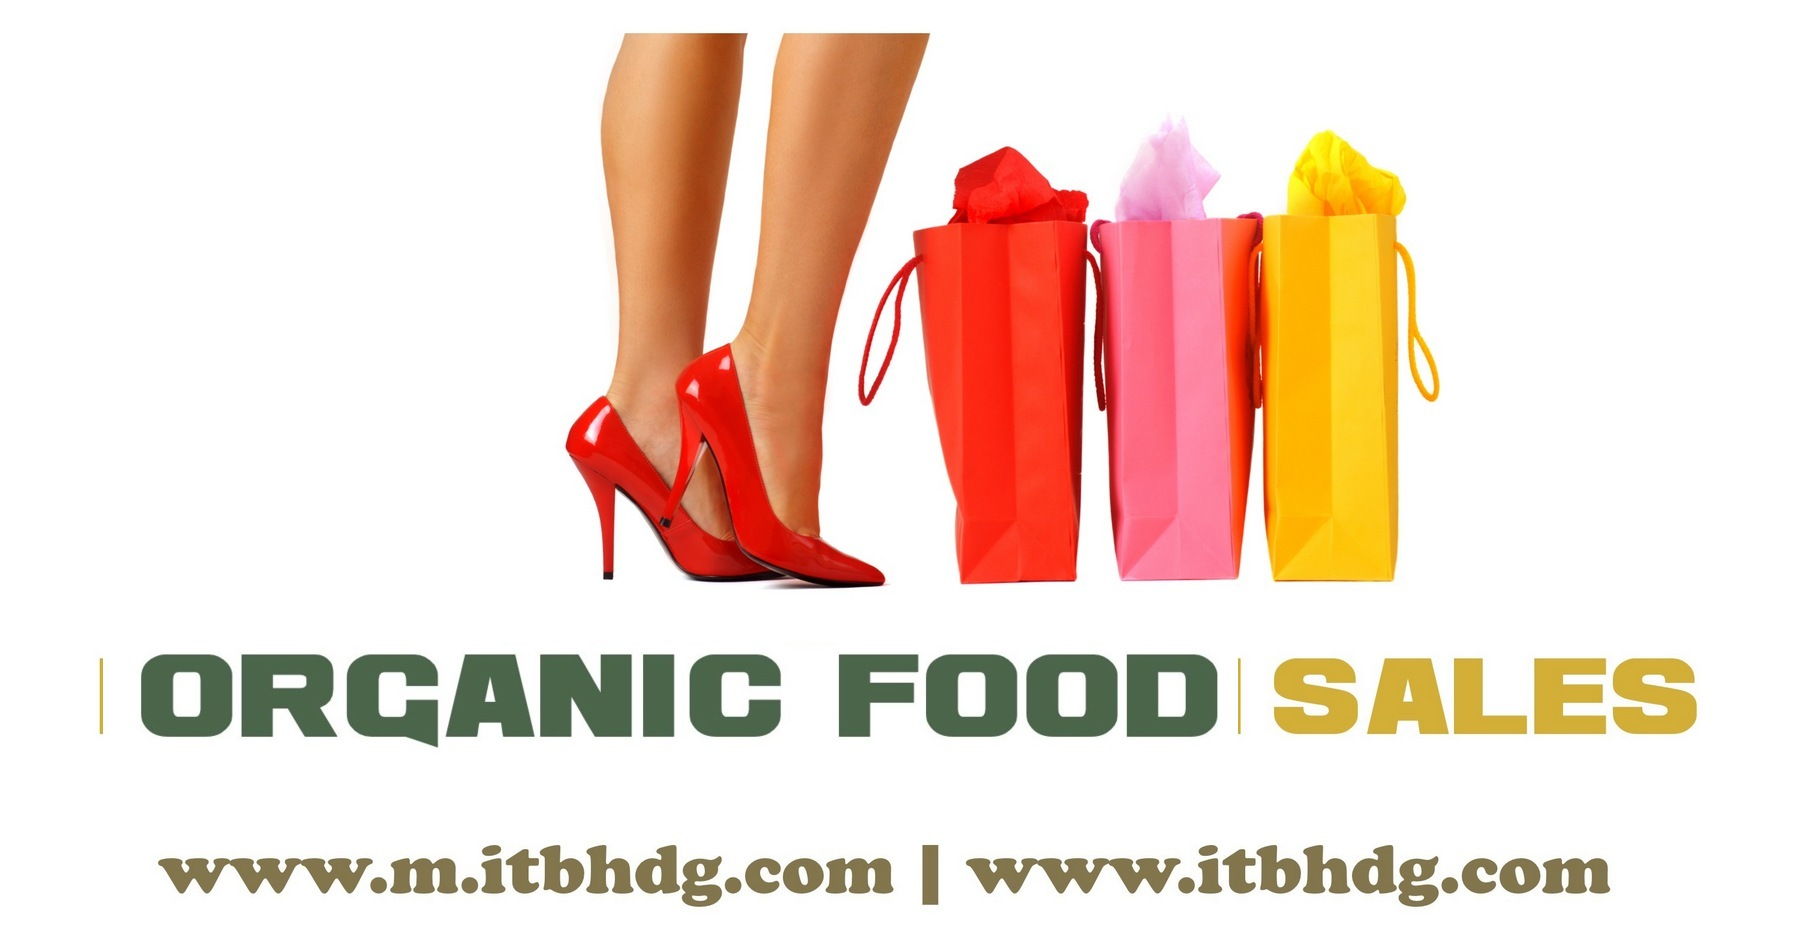 Best Prices | Free Shipping Worldwide | Cacao | Coffee @ ITB HOLDINGS LLC | www.itbhdg.com | www.m.itbhdg.com